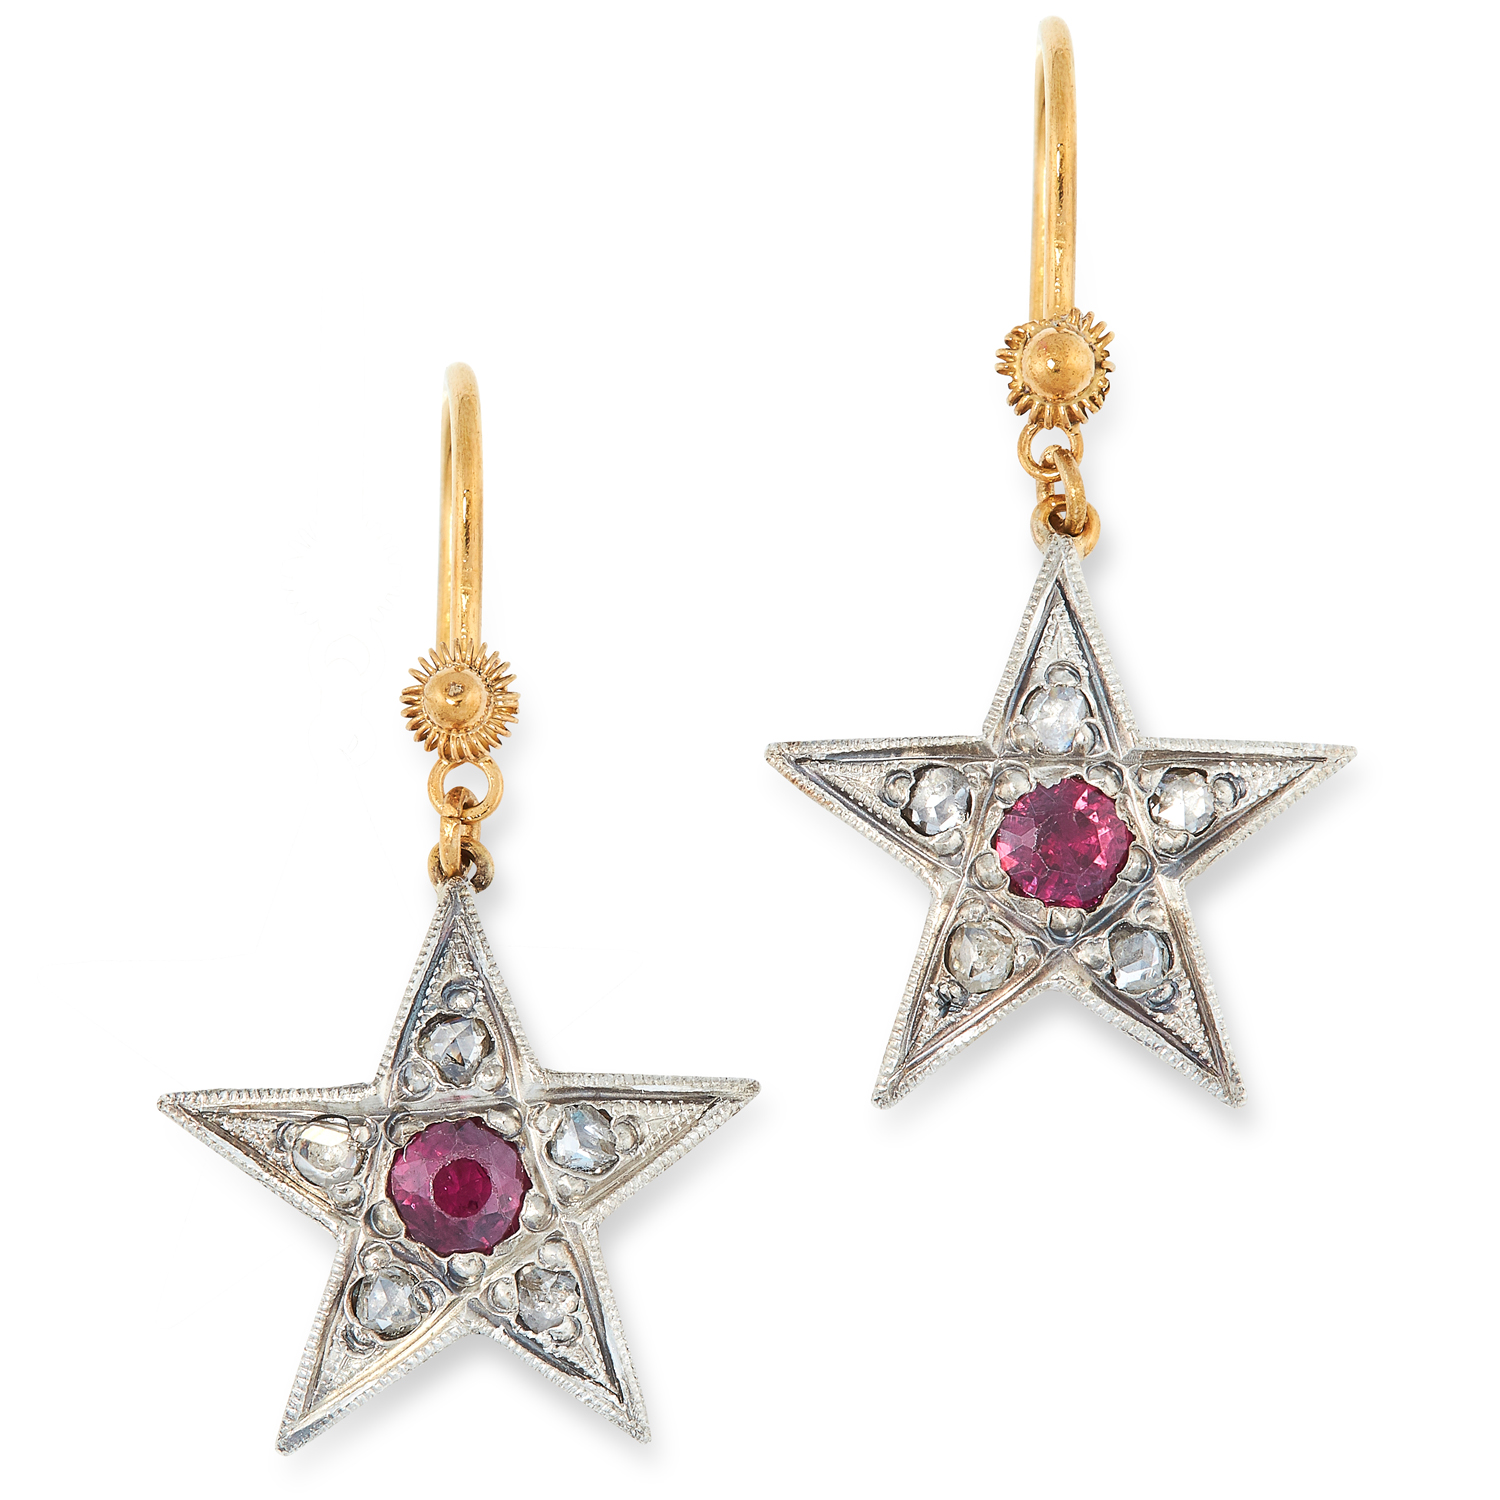 A PAIR OF RUBY AND DIAMOND STAR EARRINGS comprising of a french wire suspending a star set with a